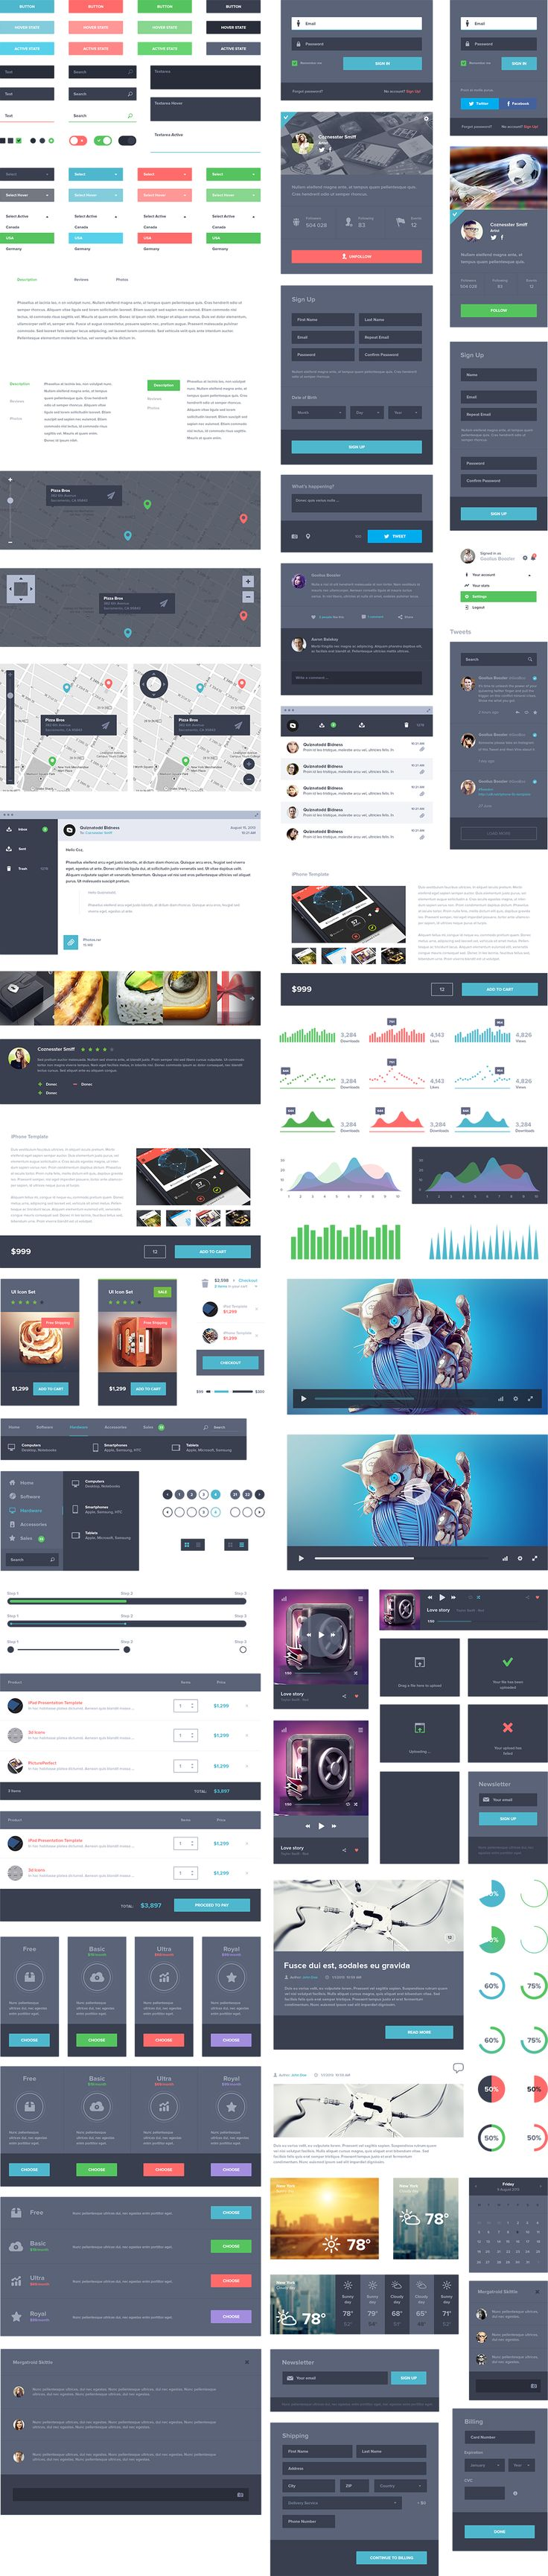 UI KIT Dark http://ui8.net/ui-kit-dark  An impressive assortment of dark styled UI elements created to make your design process easier. Even bigger and more refined than our previous UI Kit, these great out of the box options will allow your work to shine in no time! Delivered as a well-organized PSD